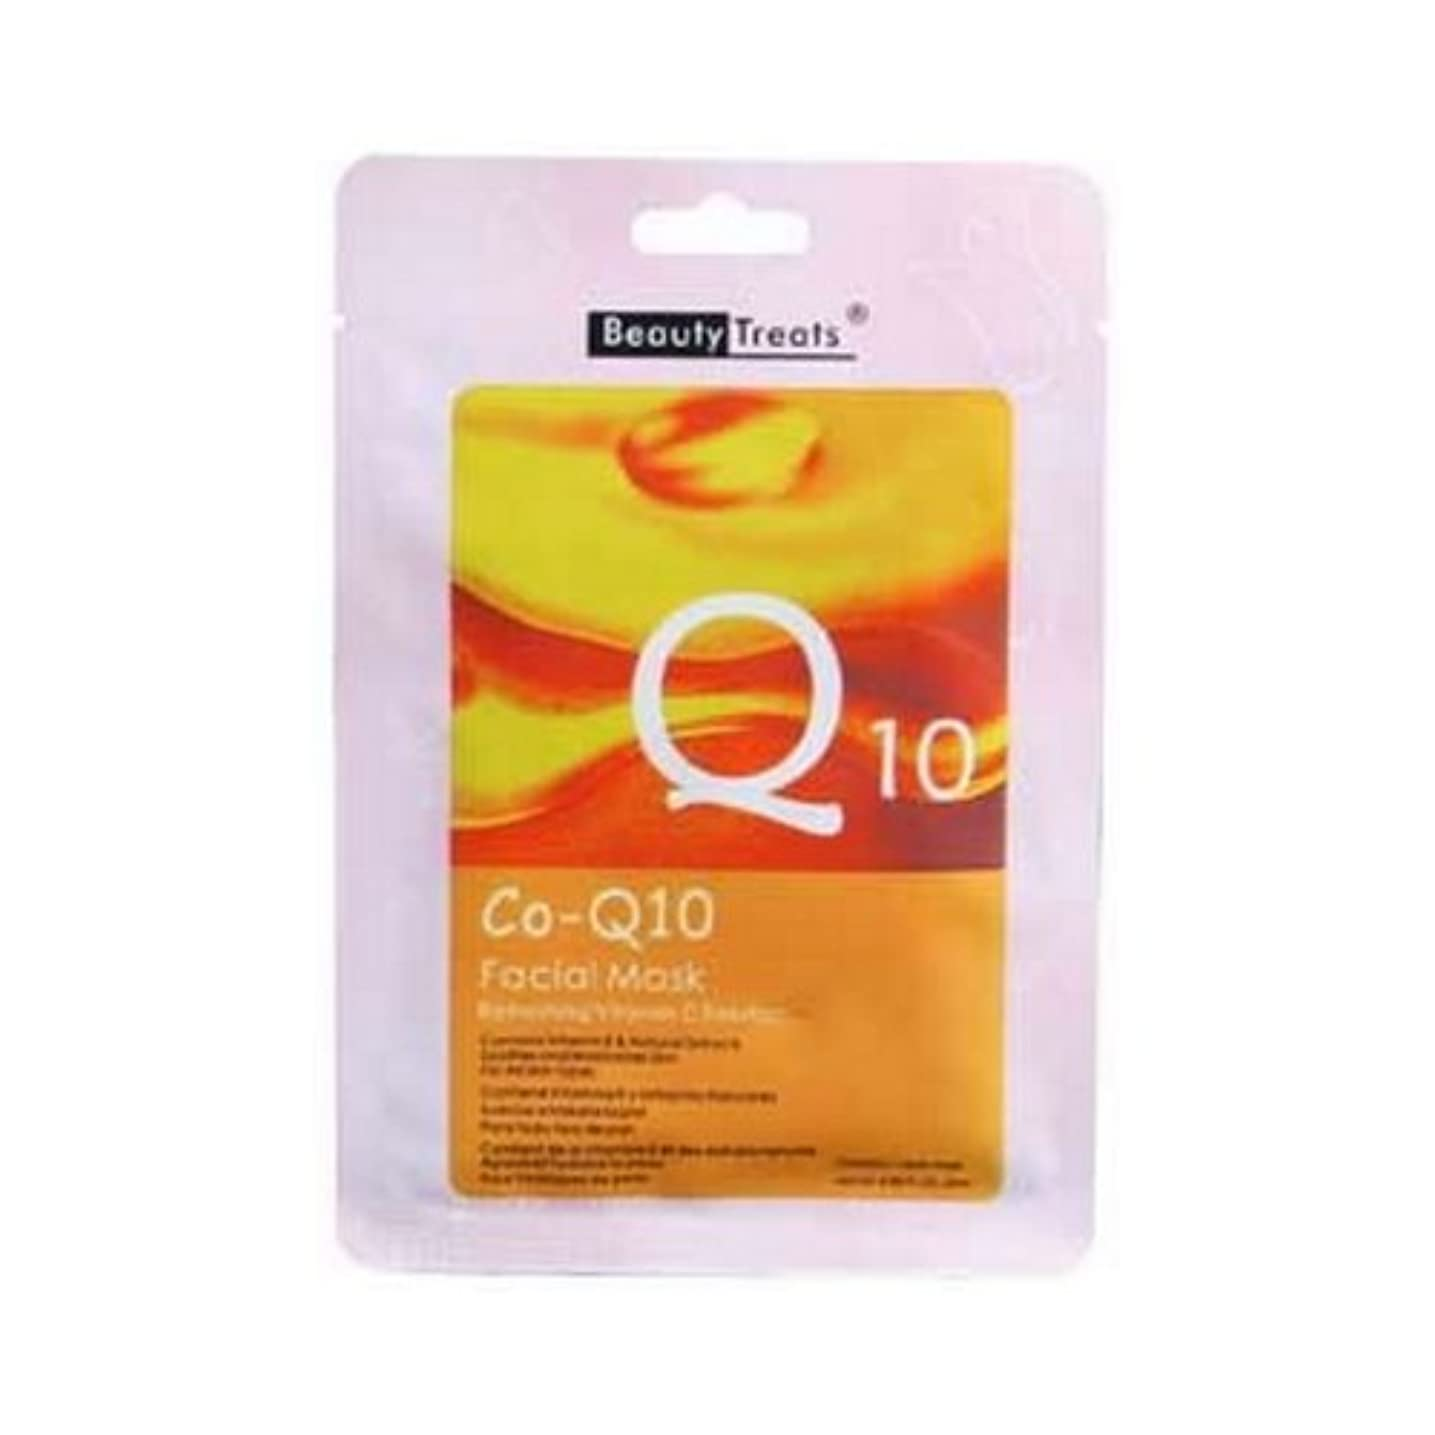 反対した実り多いサドル(3 Pack) BEAUTY TREATS Facial Mask Refreshing Vitamin C Solution - Co-Q10 (並行輸入品)